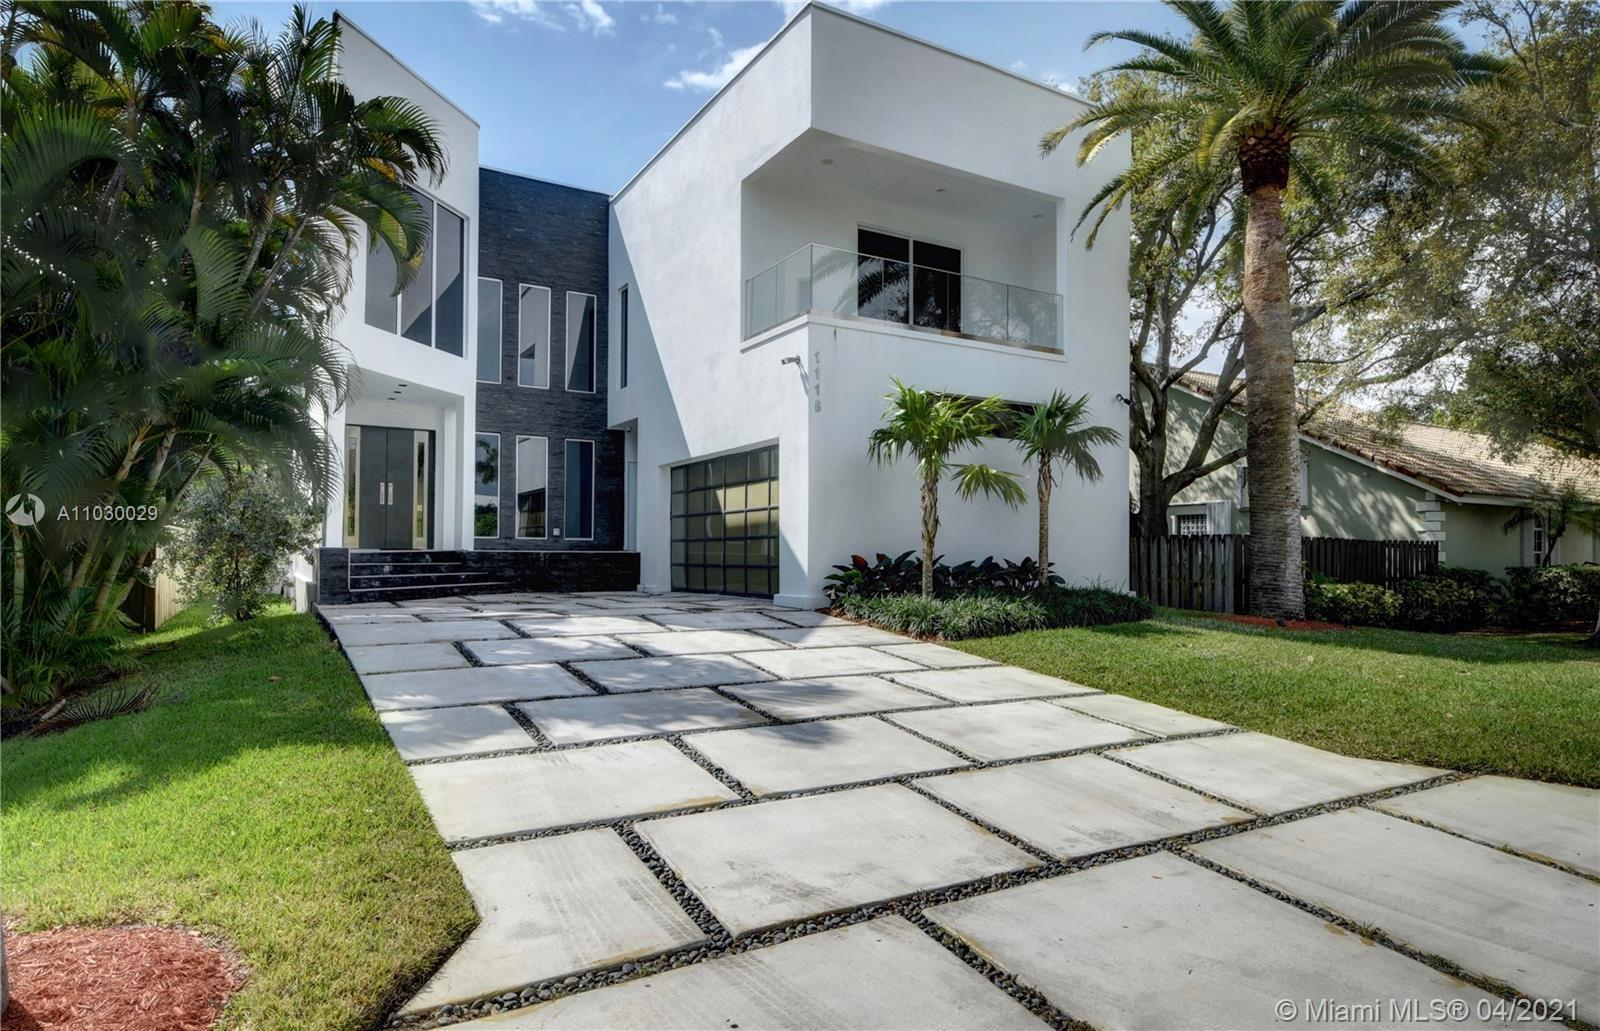 This ultra modern recently developed 2-story home will not last on the market for long! Situated in